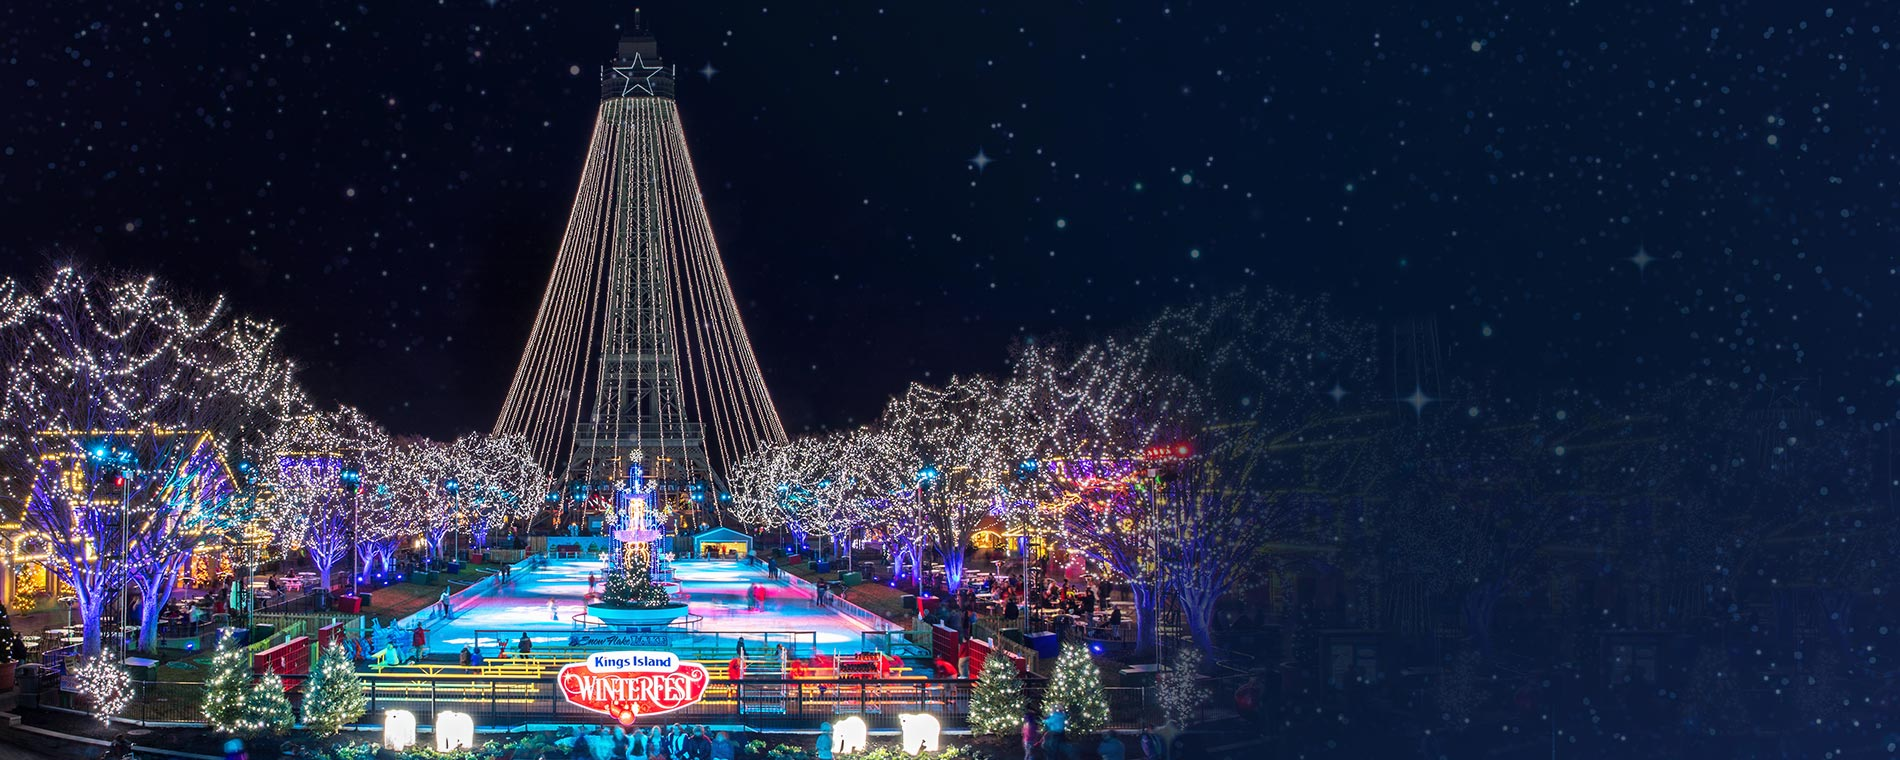 WinterFest Tickets at Kings Island's Holiday Event